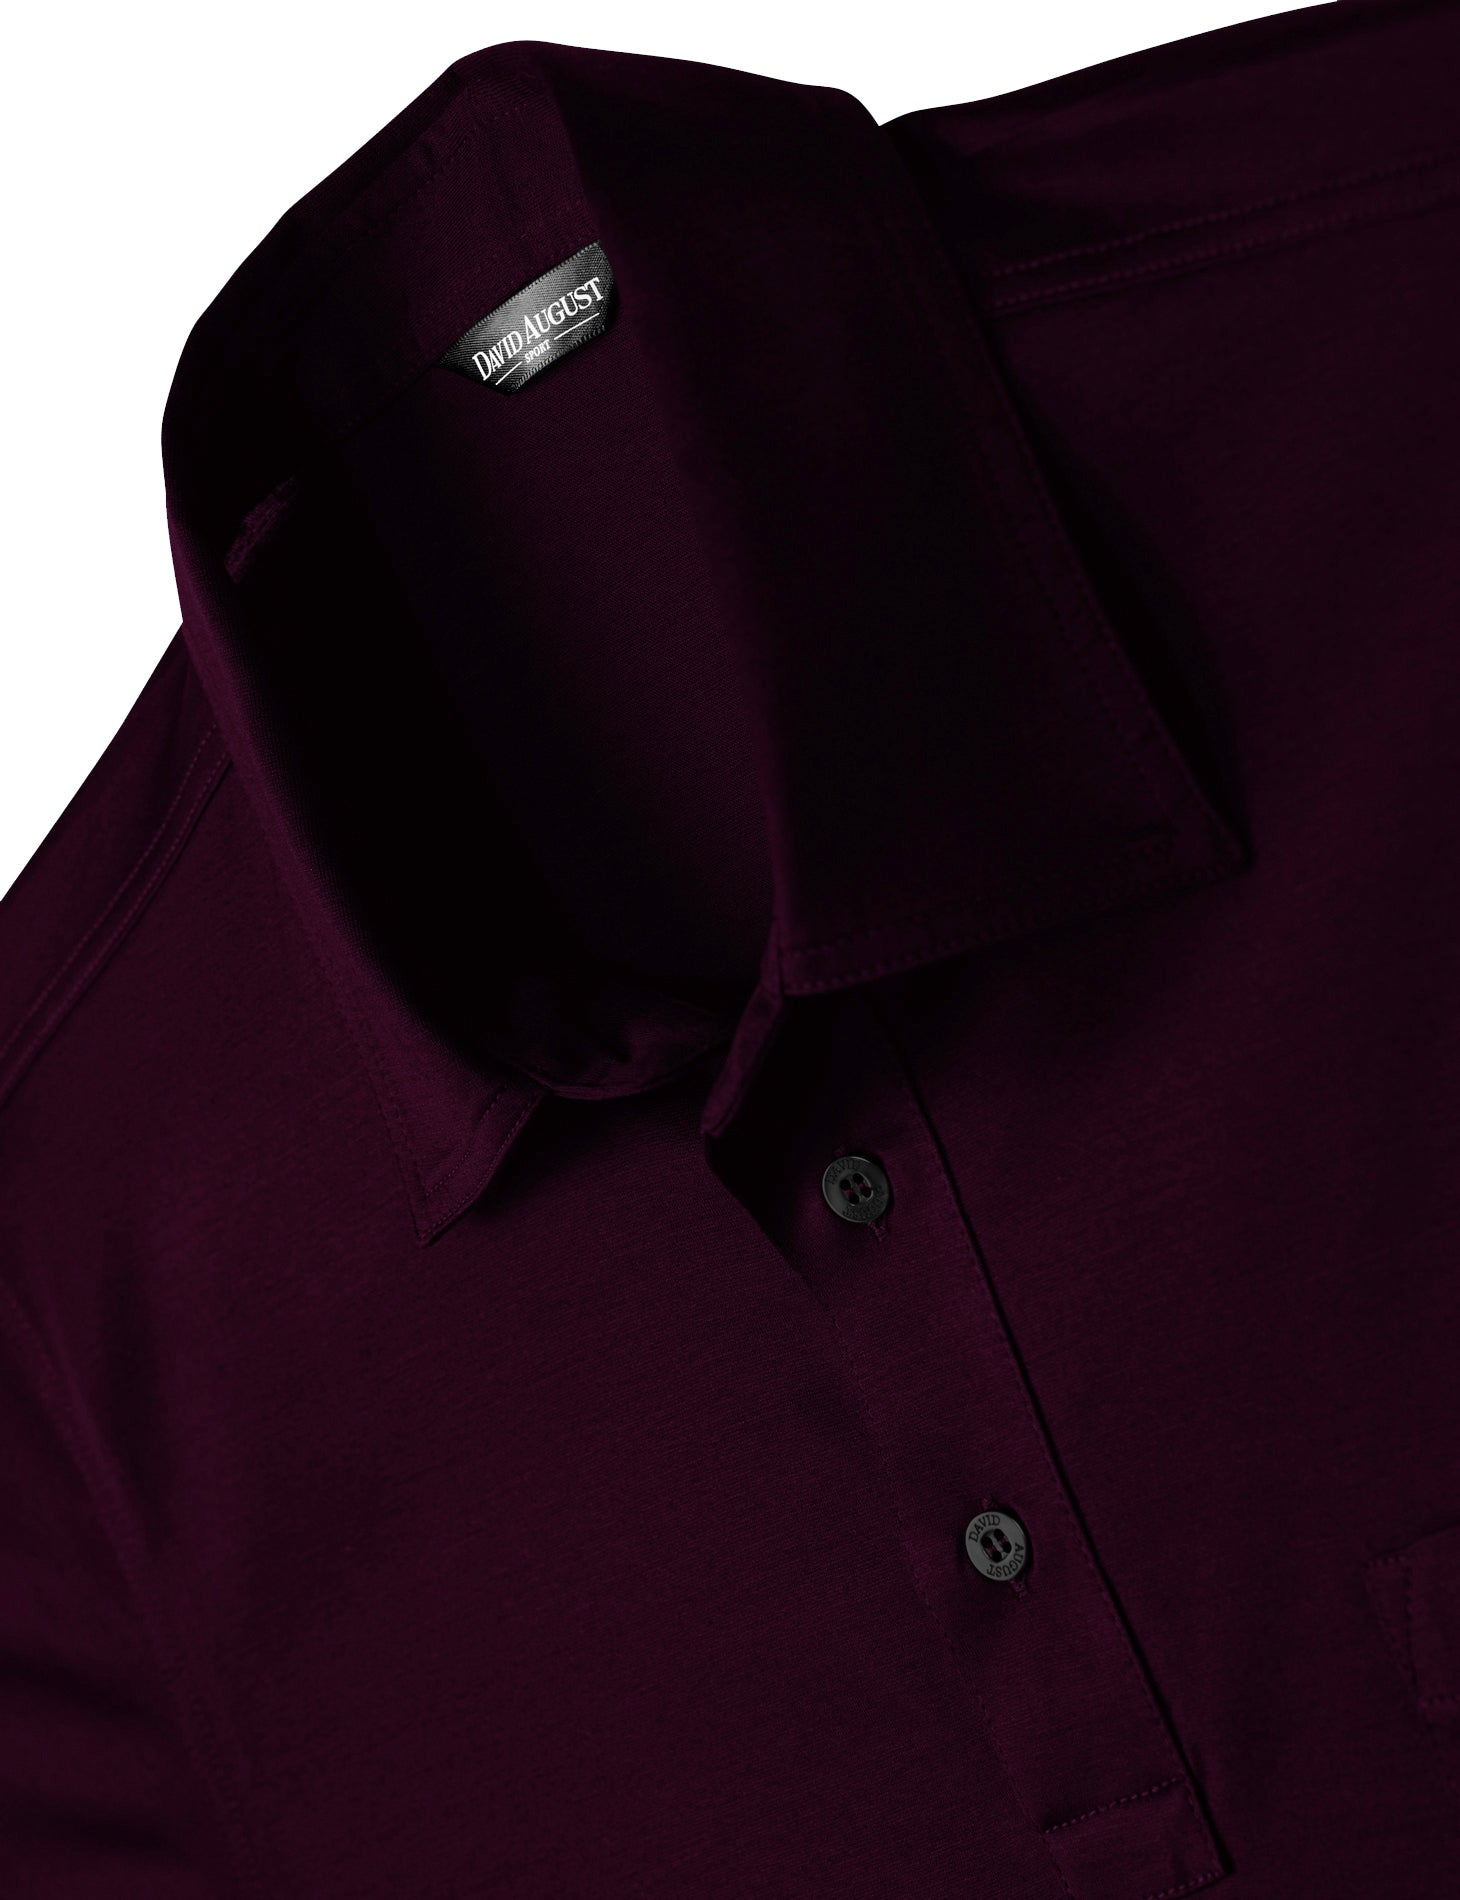 David August Luxury Mercerized Cotton Polo in Vino Rosso